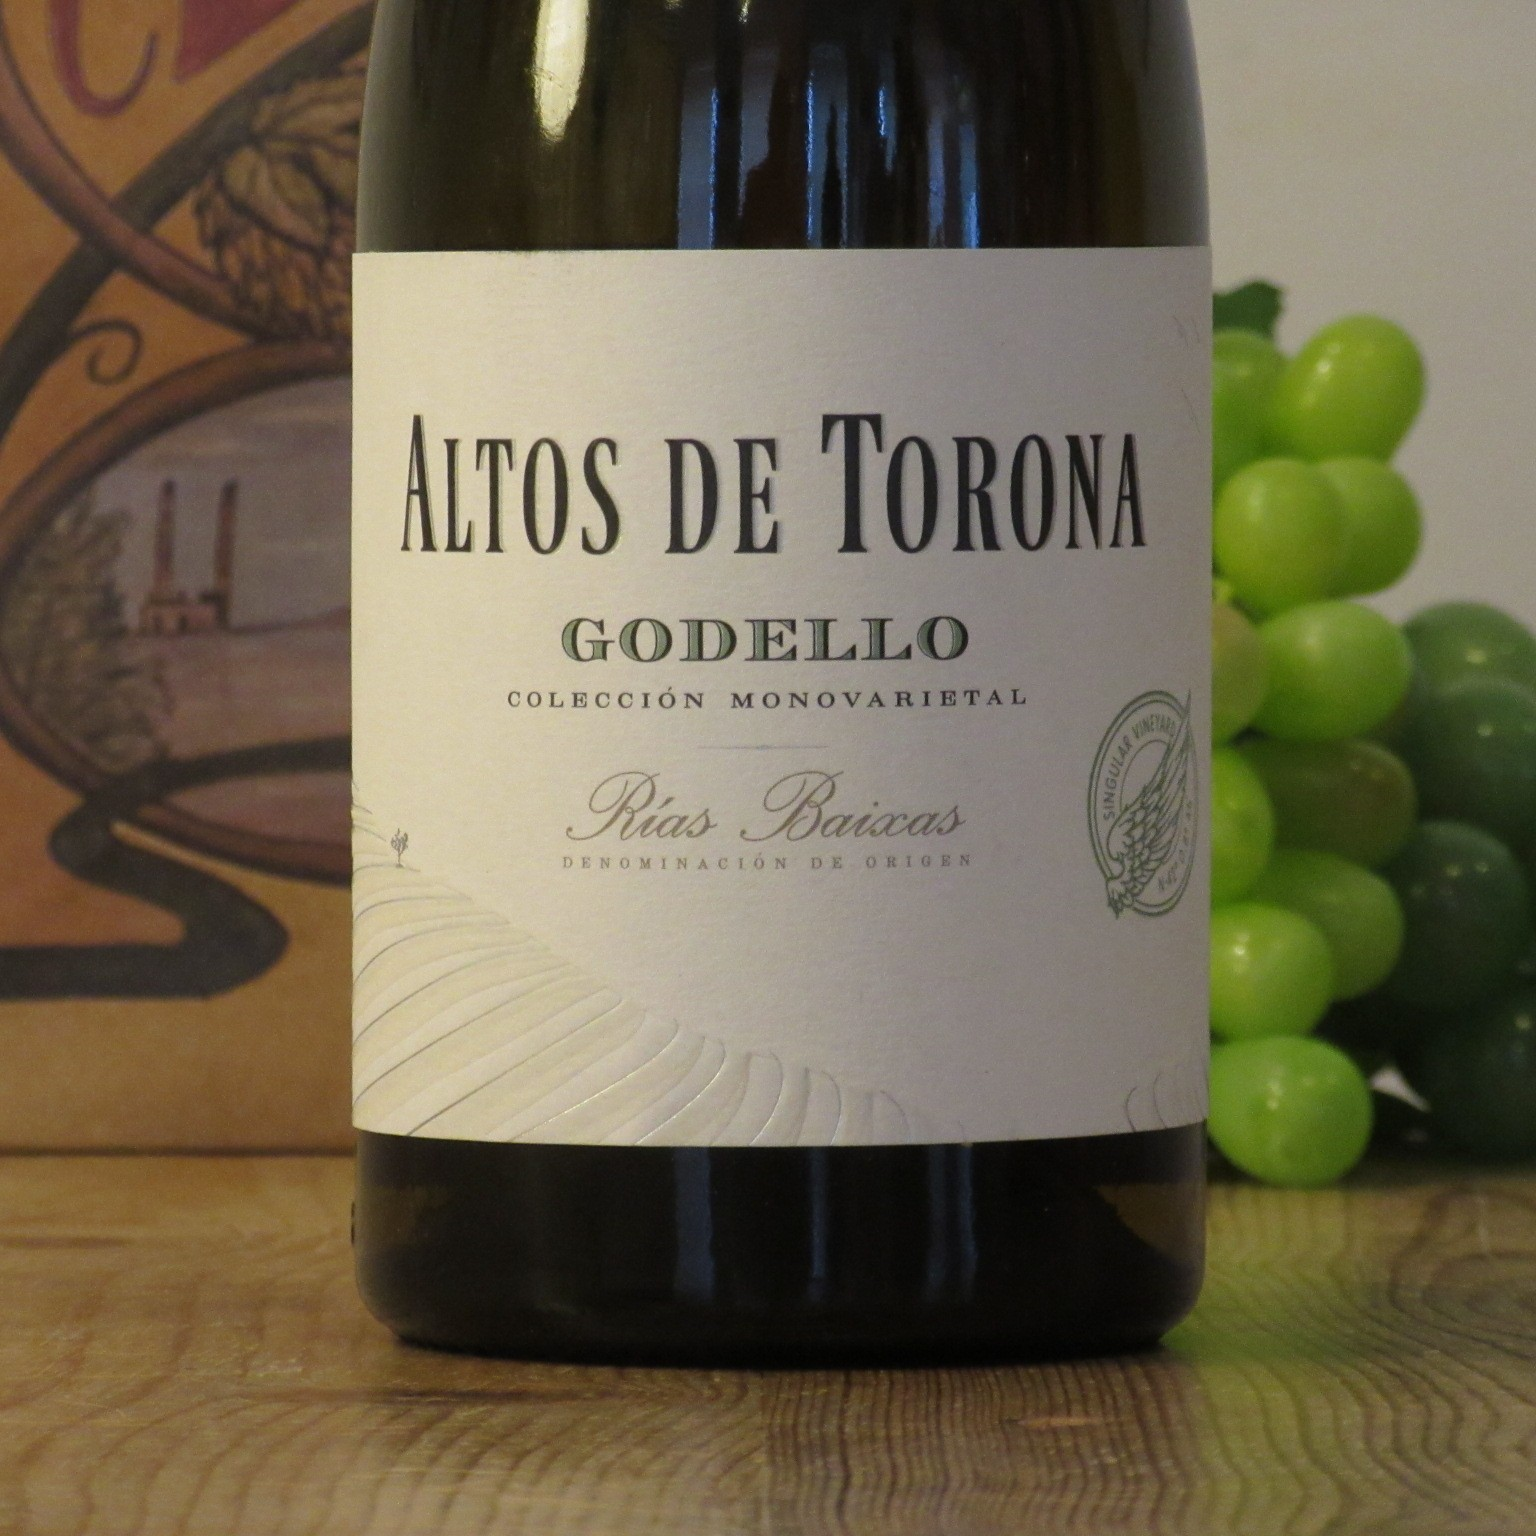 Altos de Torona Godello